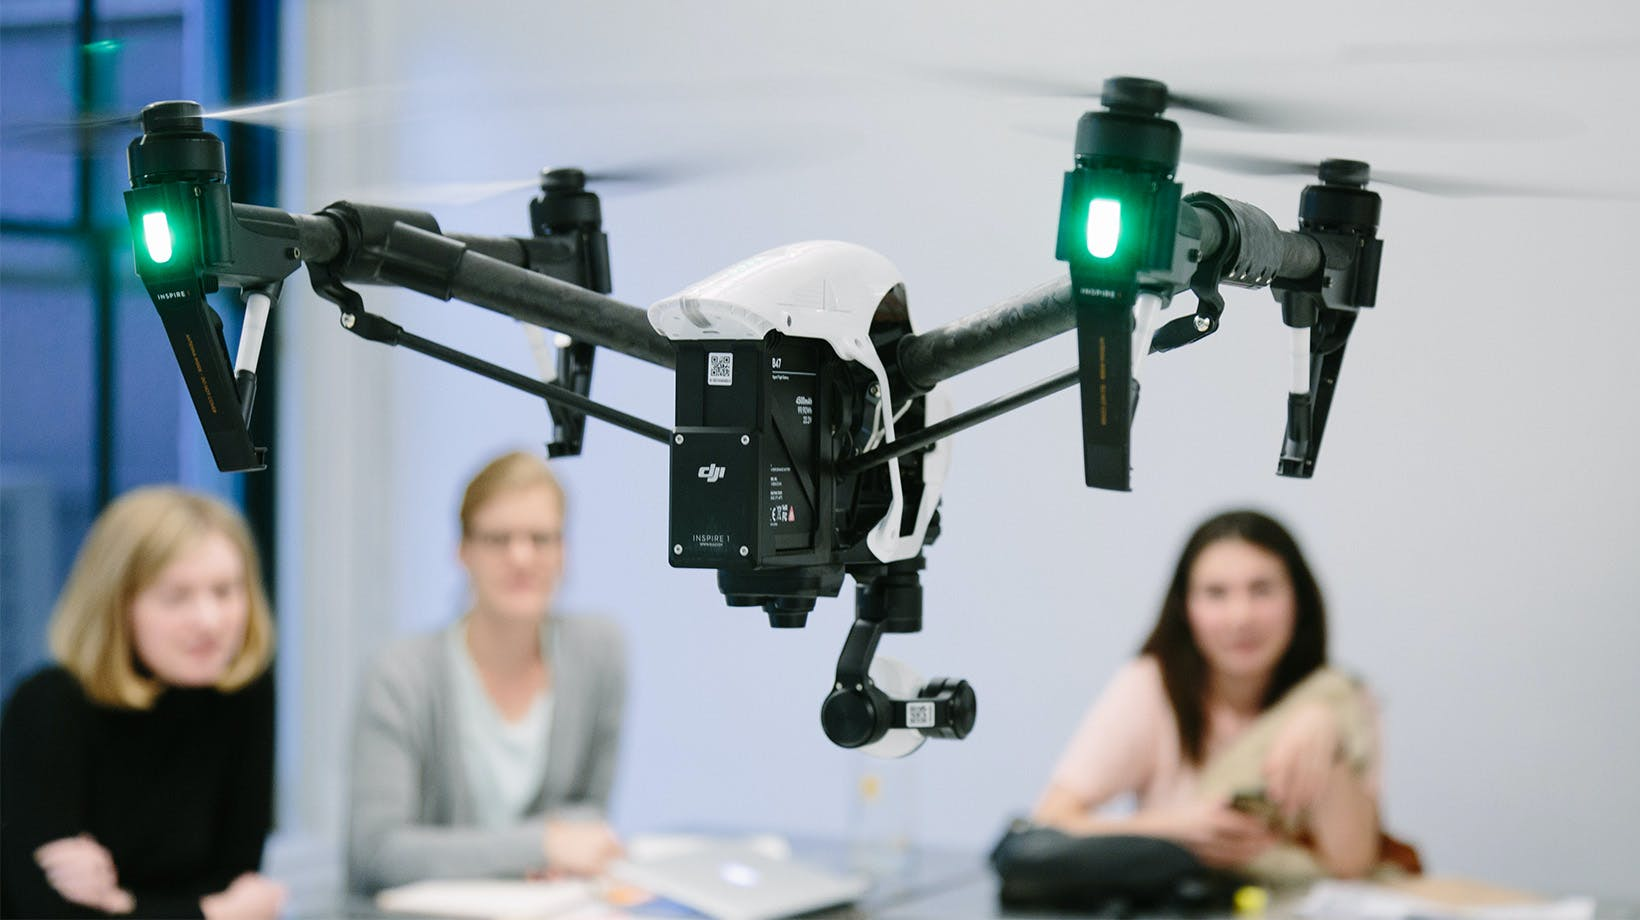 Rethink the Ethics of Drones